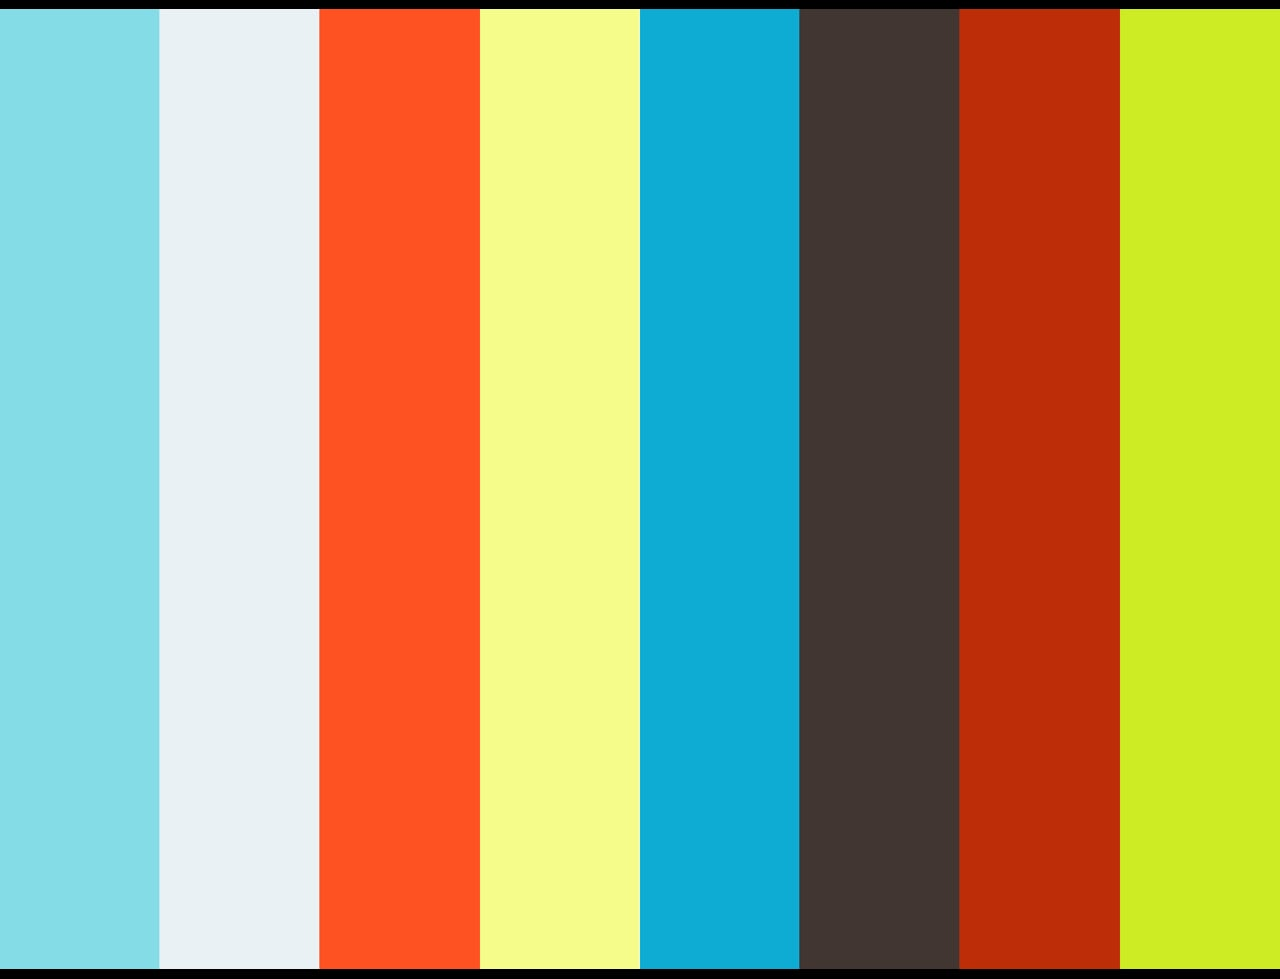 Psychology and Immunology - The Evolving PANDAS Patient Profile